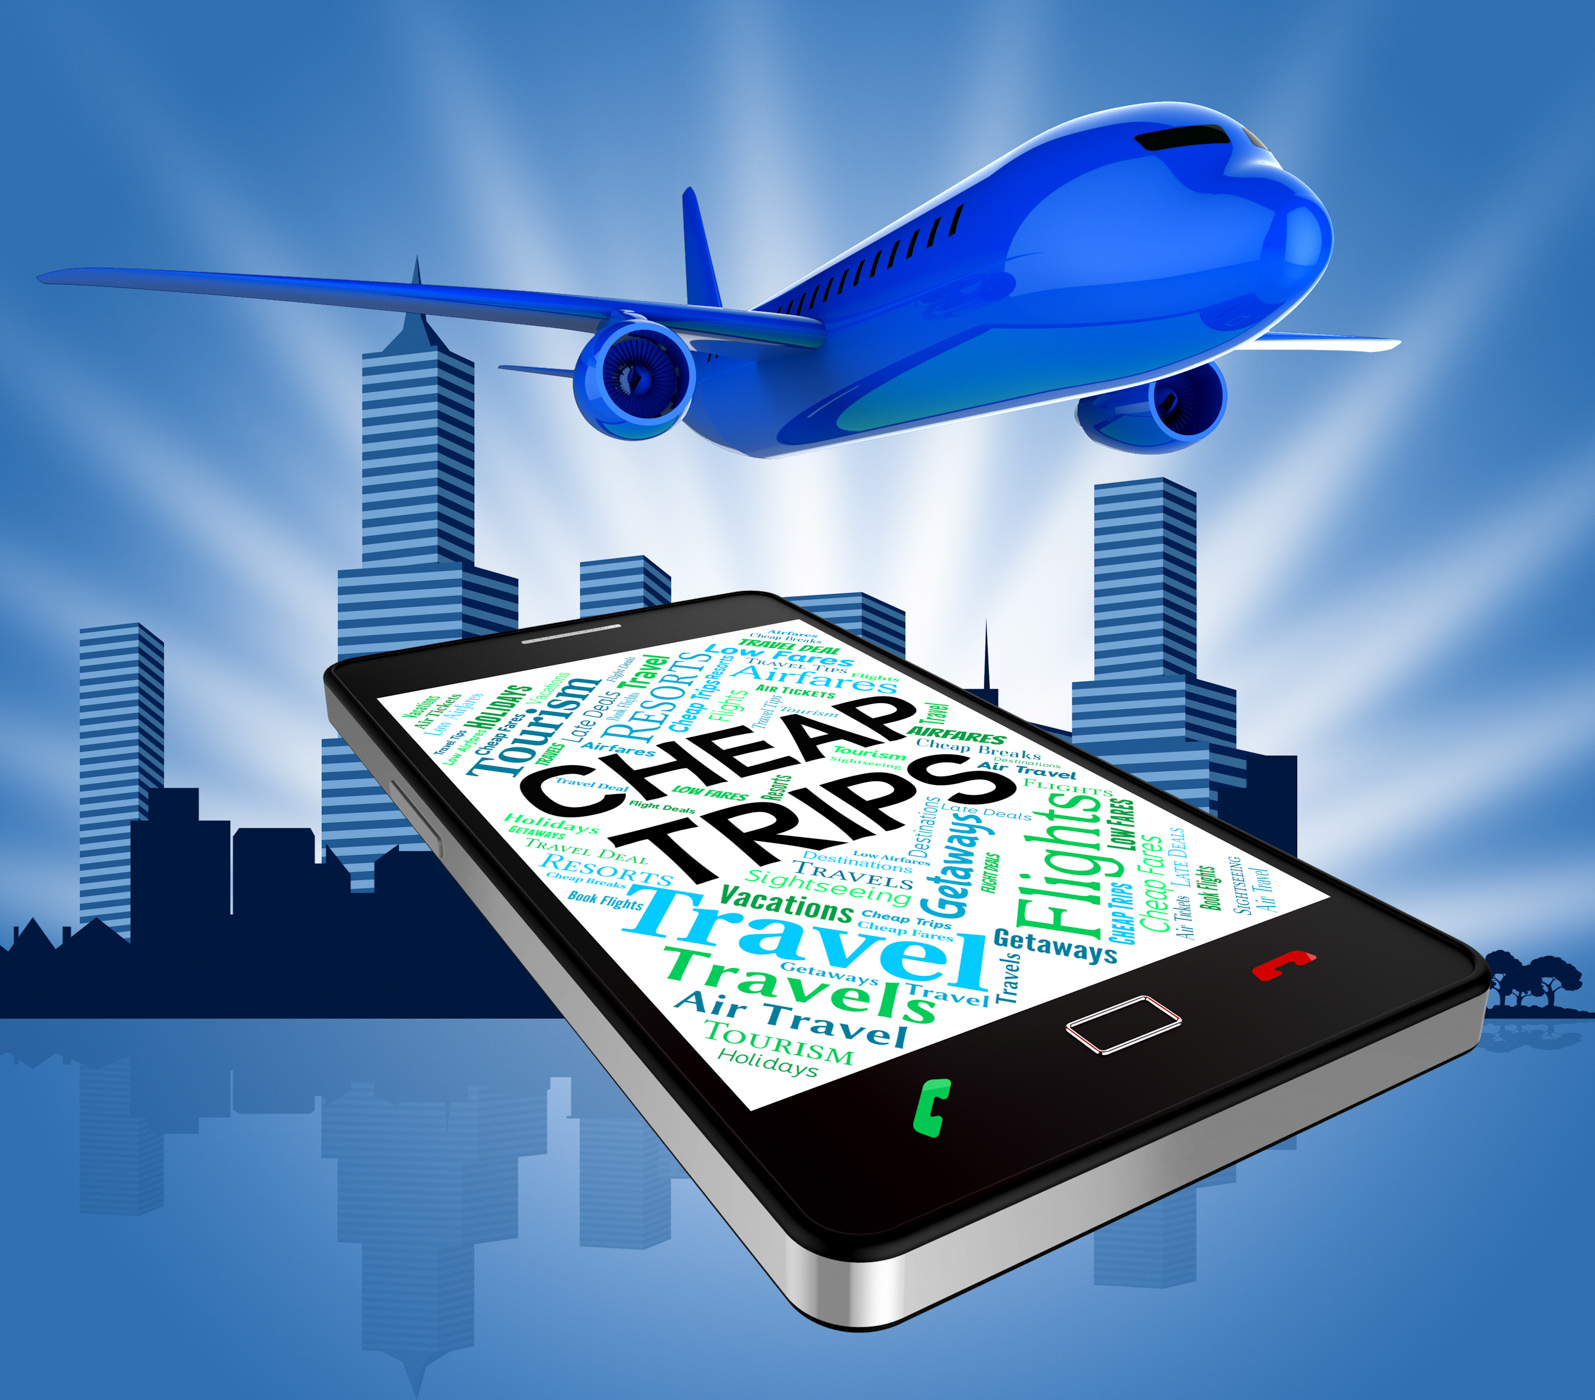 Cheap trips represents low cost and aircraft photo